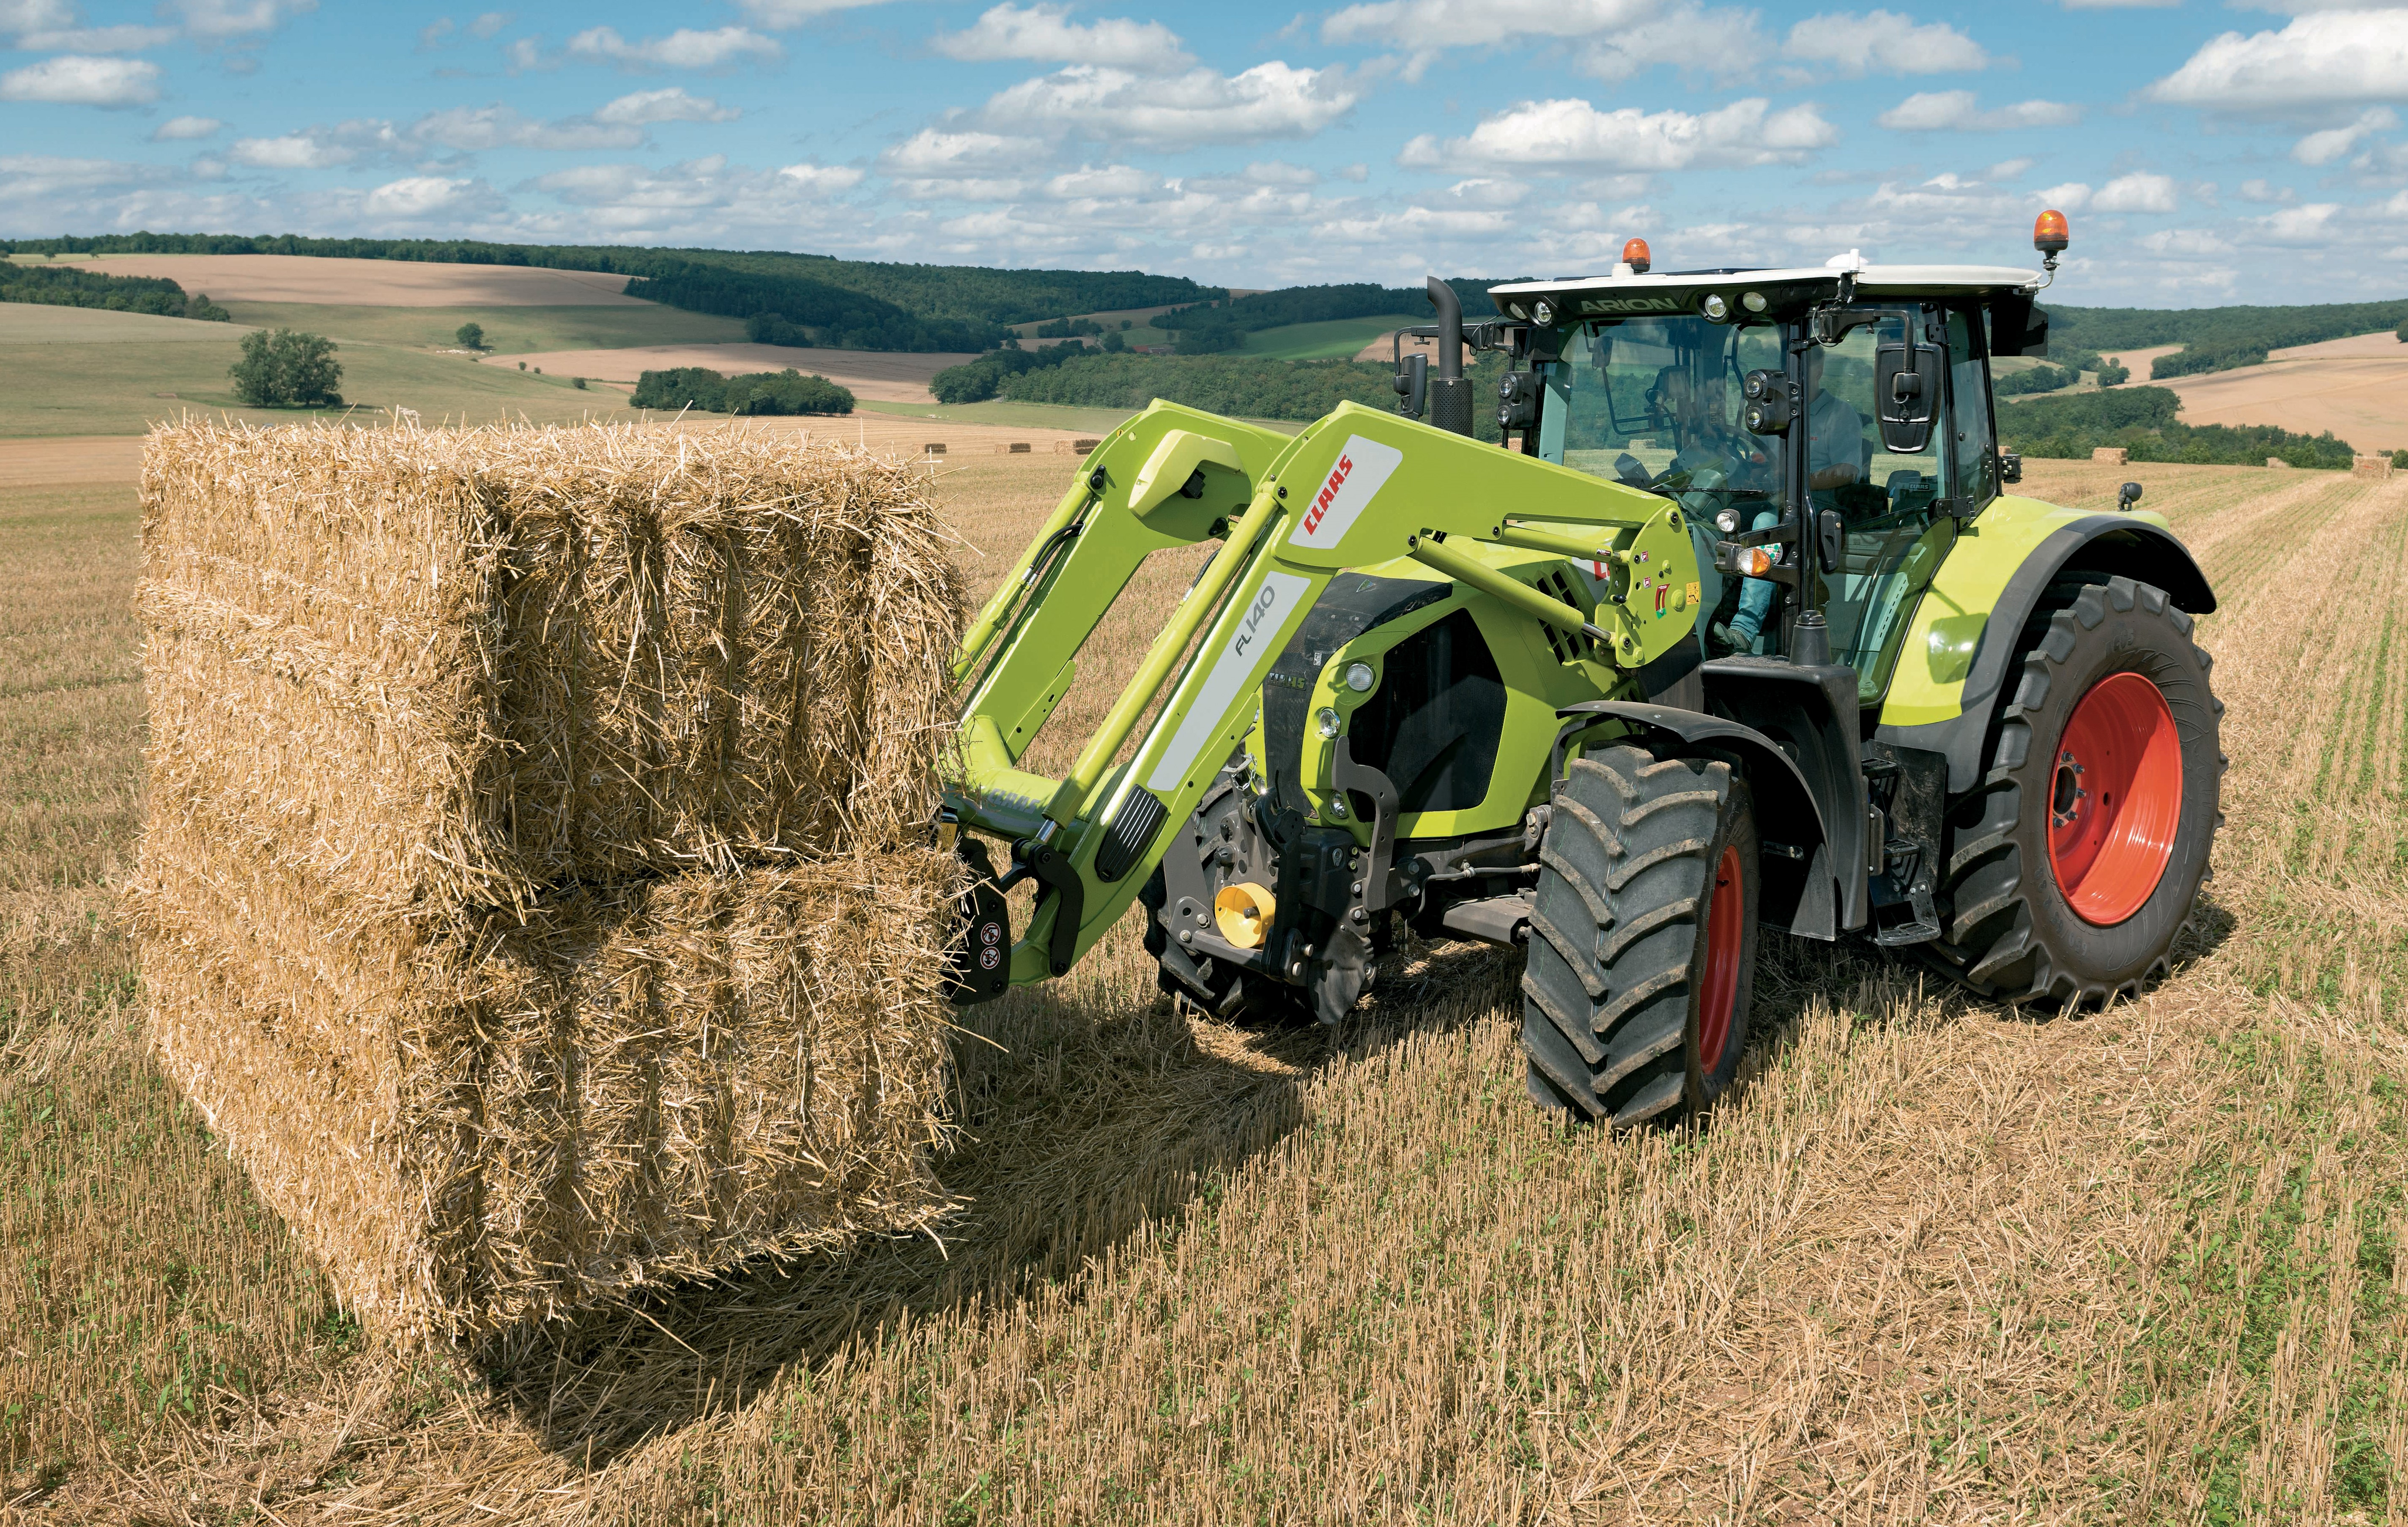 Pics Claas Updates Its Arion 600 And 500 Series Tractors